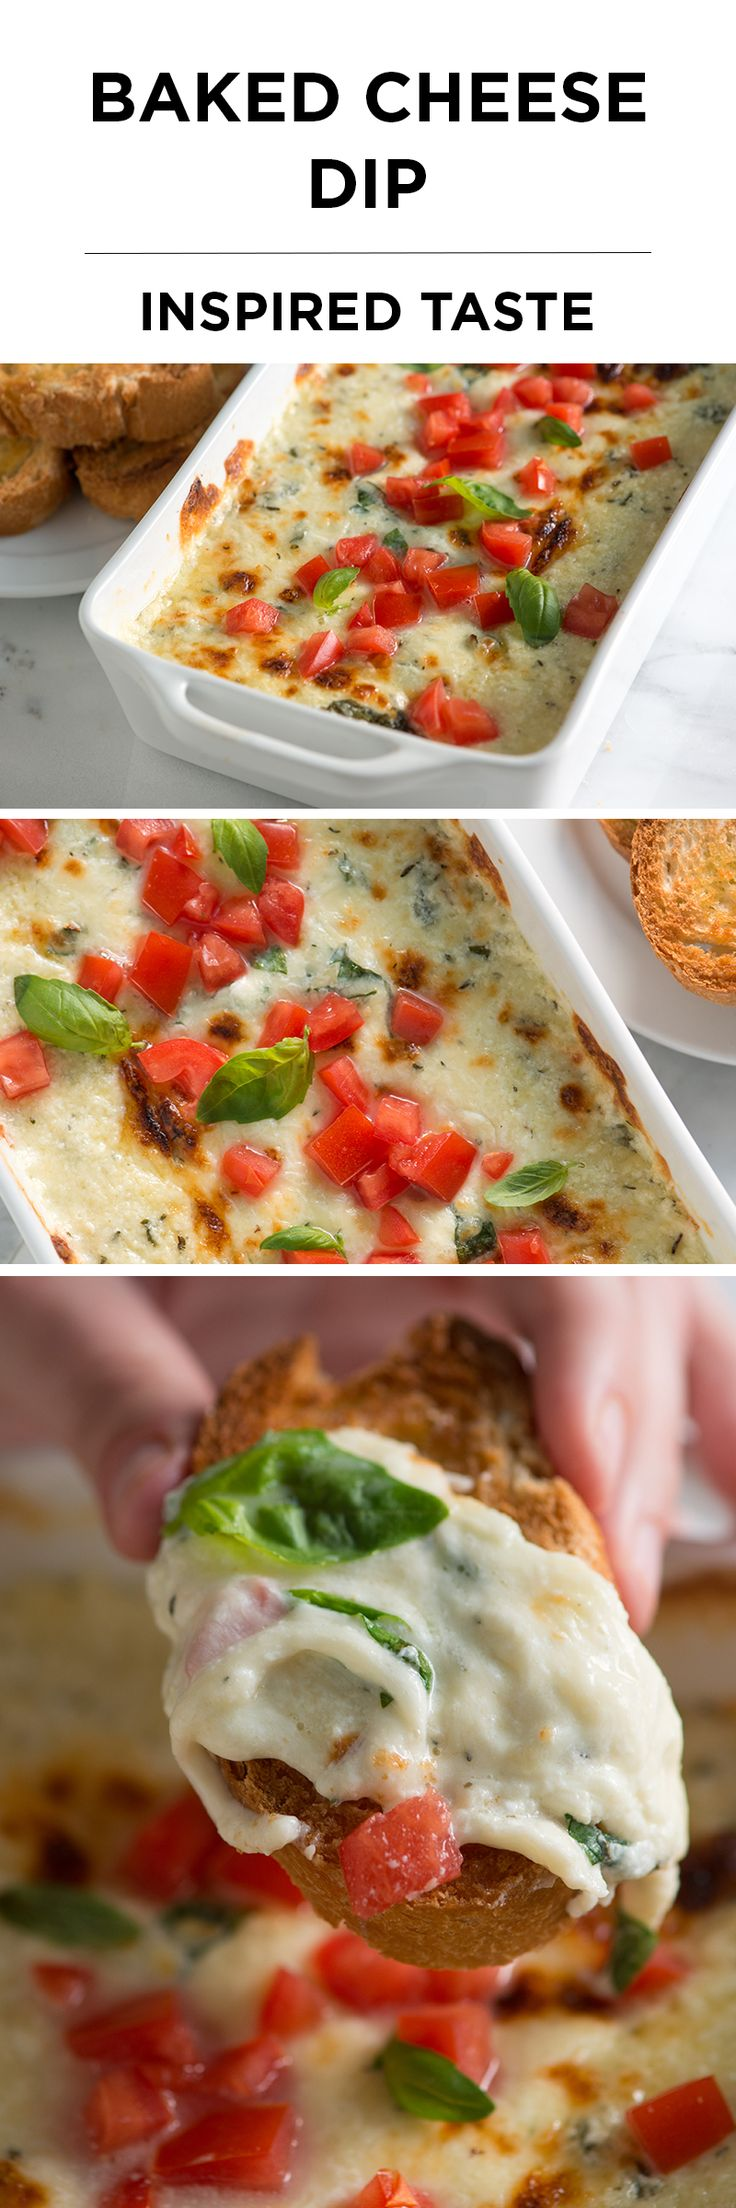 This basil-scented baked cheese dip is one of our favorite things to serve friends. From inspiredtaste.net | @inspiredtaste